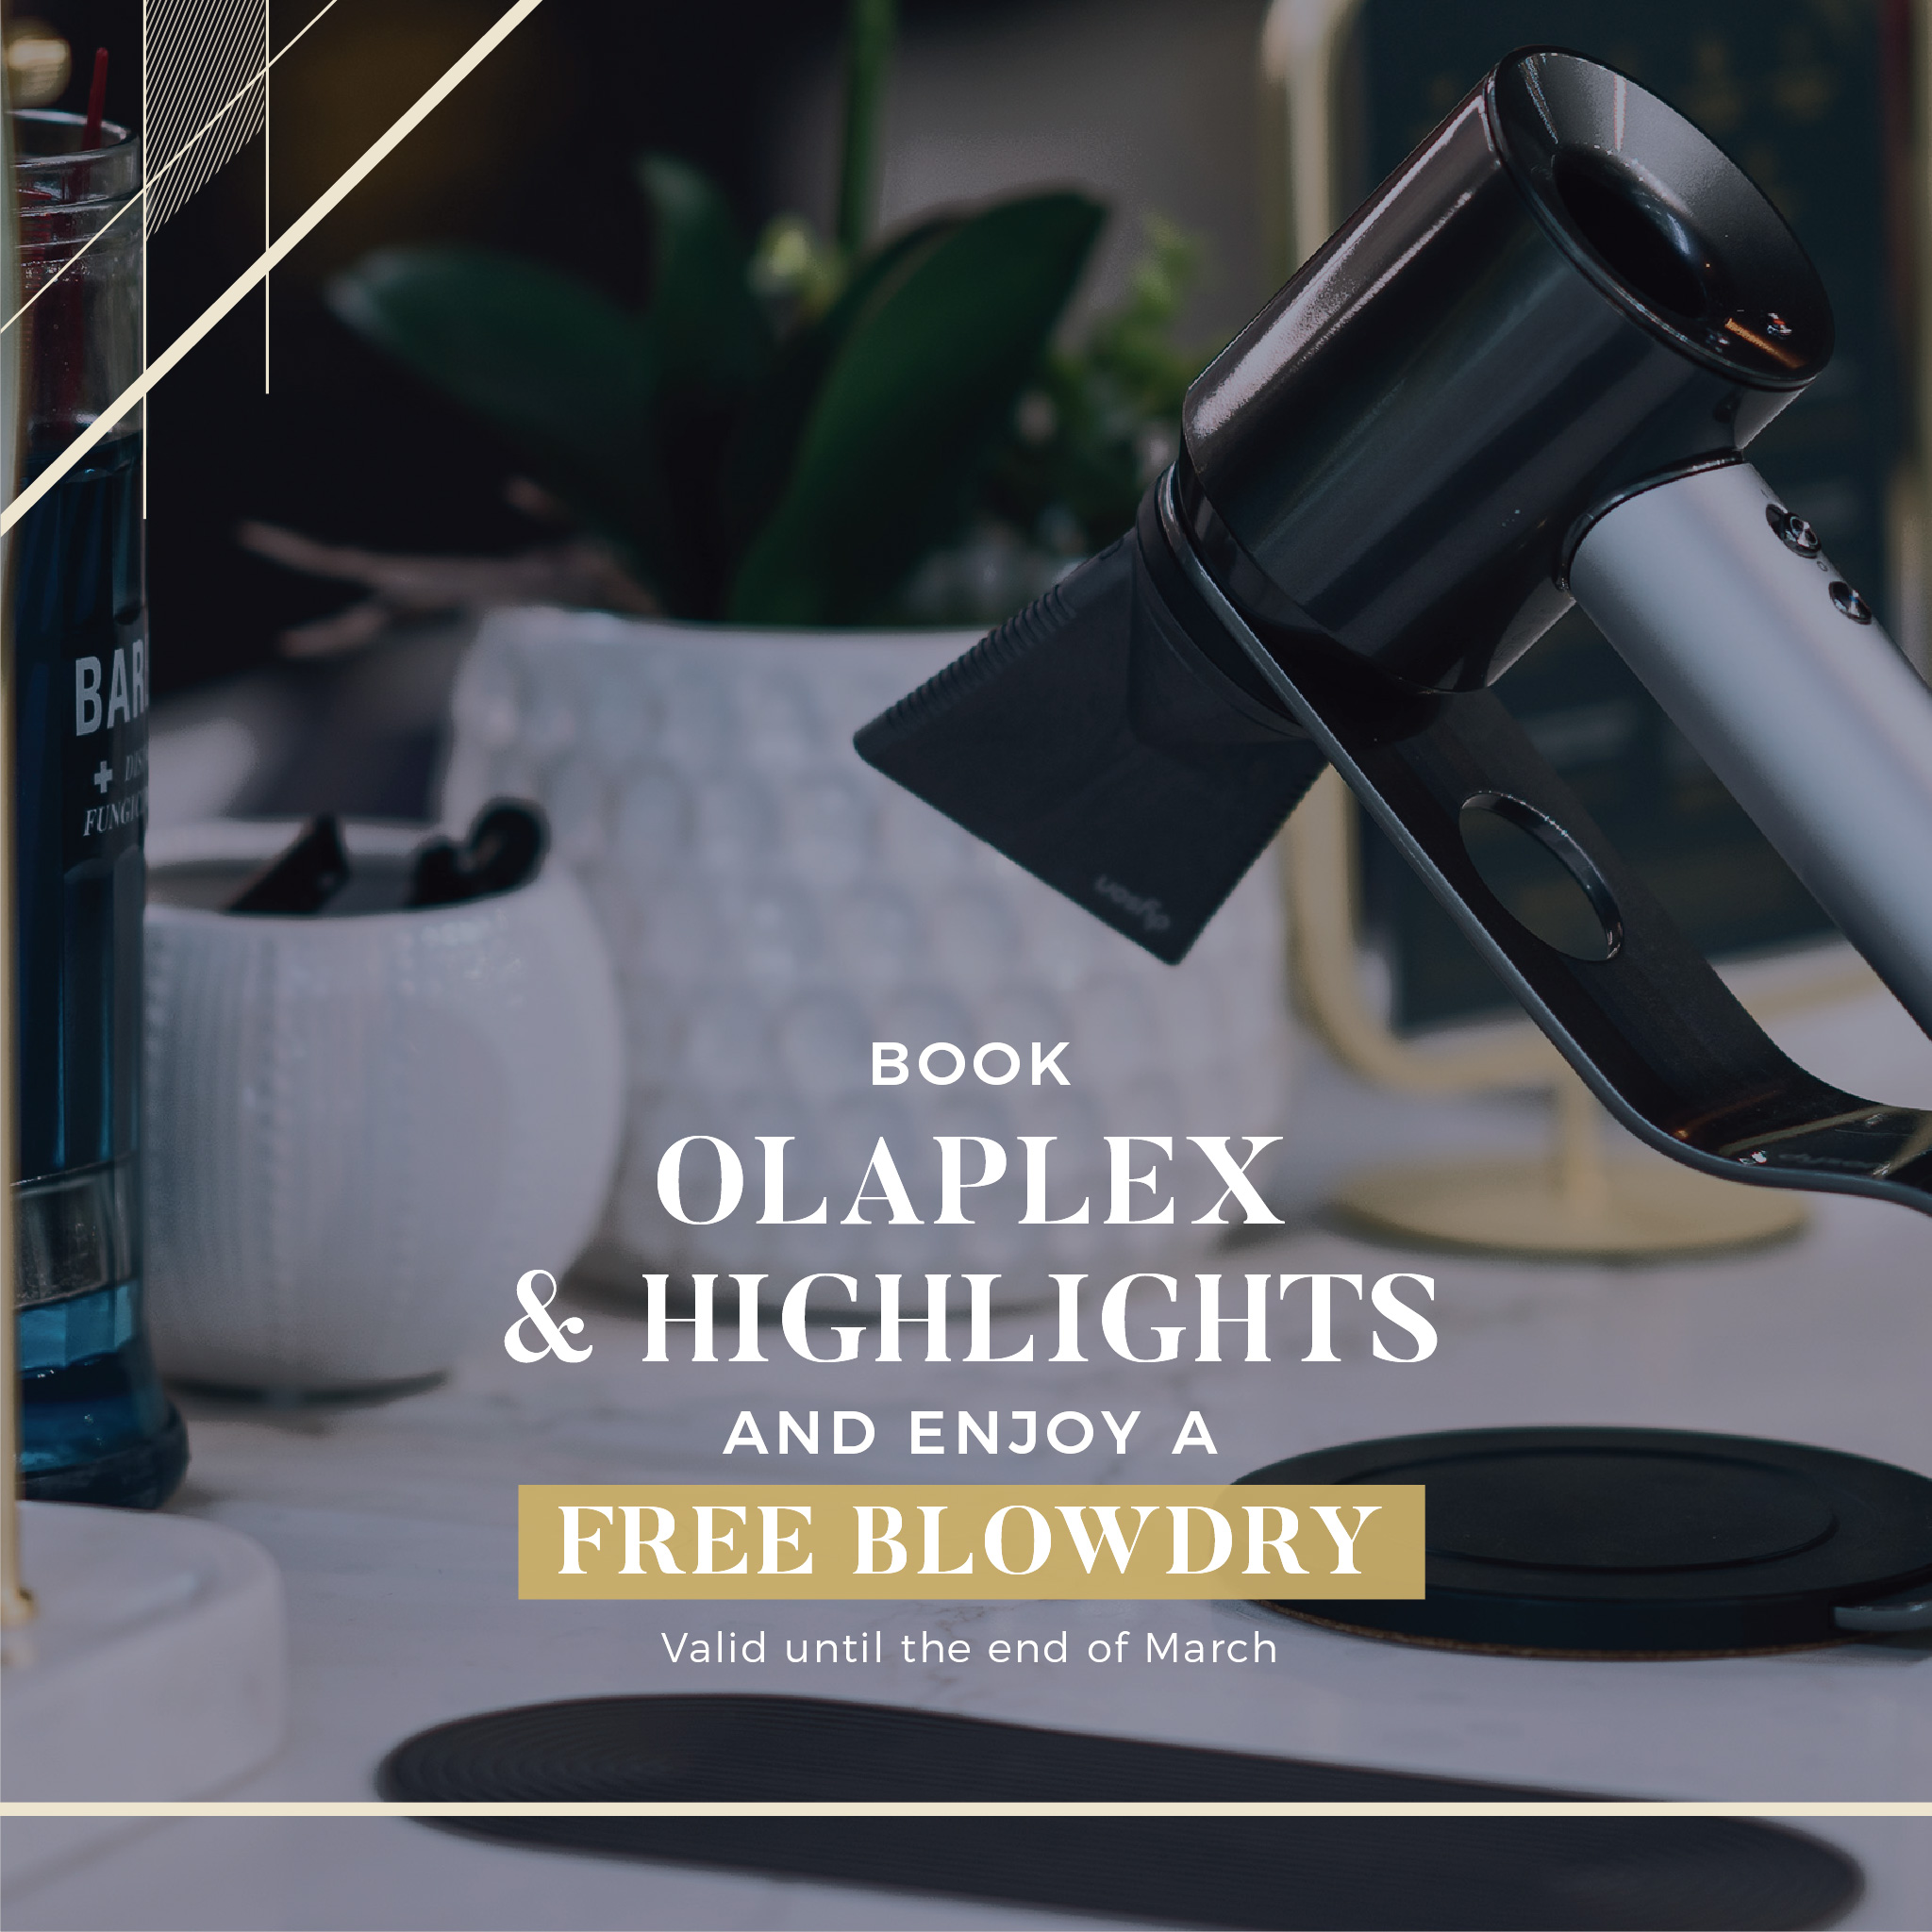 Palmerston North Hair Salon March 2021 Free Blow Dry Offer Image